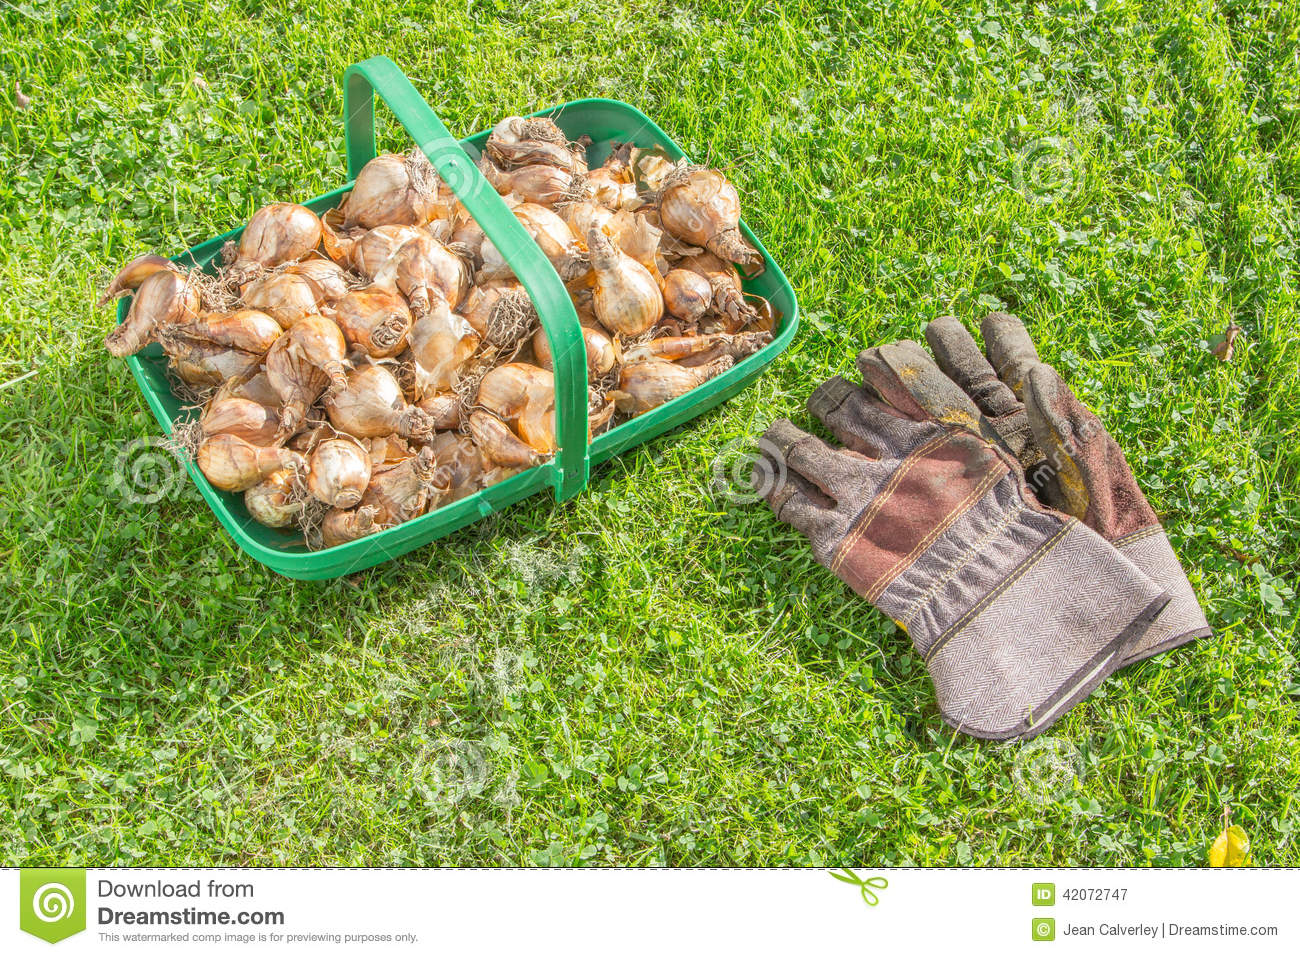 When how to plant daffodil bulbs - Royalty Free Stock Photo Download Daffodil Bulbs Ready To Plant